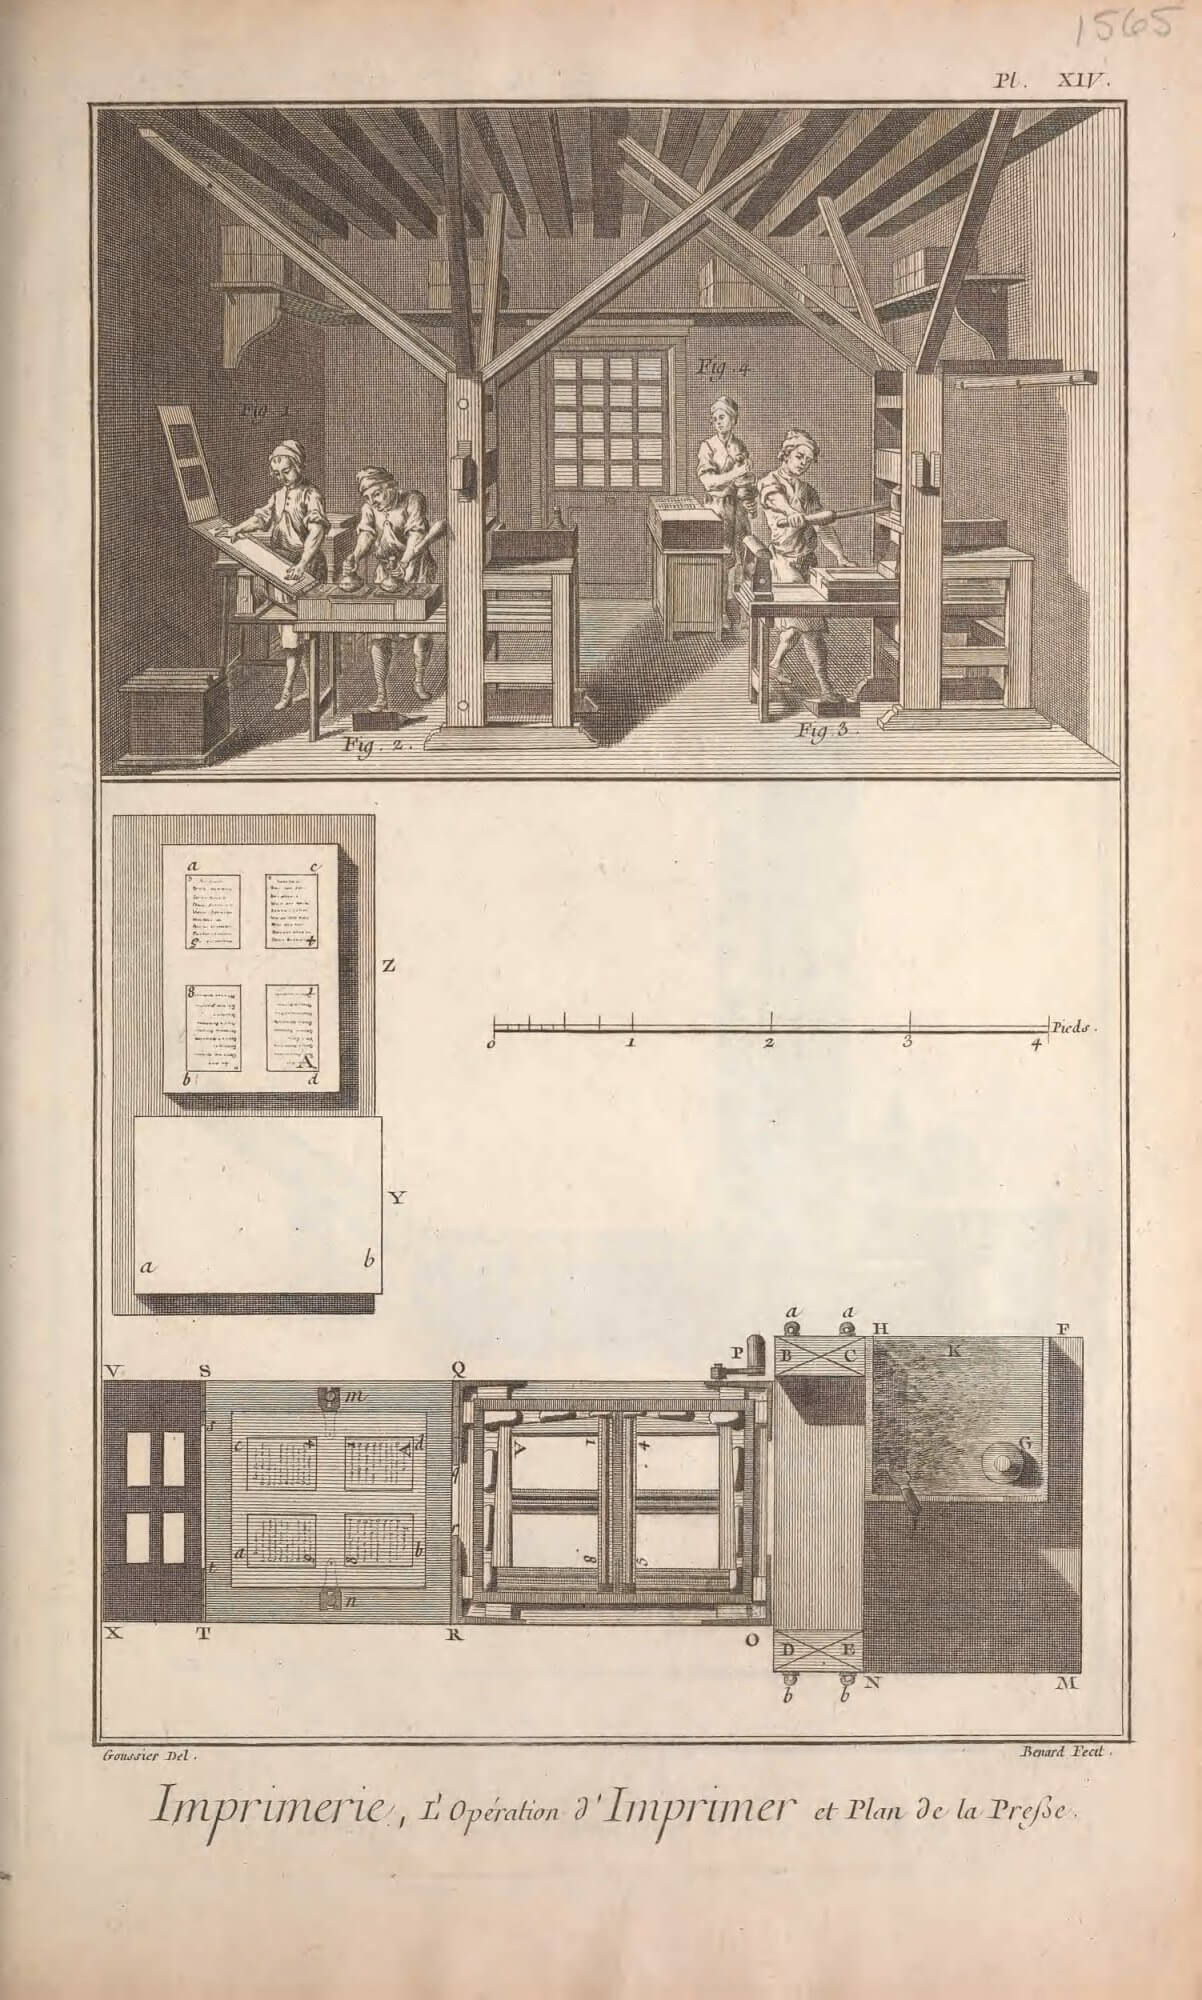 An illustration of a pressroom: on the left the paper is being placed on the tympan while the type is being inked; on the right a separate press is being pulled while the beater works the ink in the background. At the bottom of the page is a top-down view of the press showing how a quarto imposition looks on the press stone and how it is inked on the paper held on the tympan.